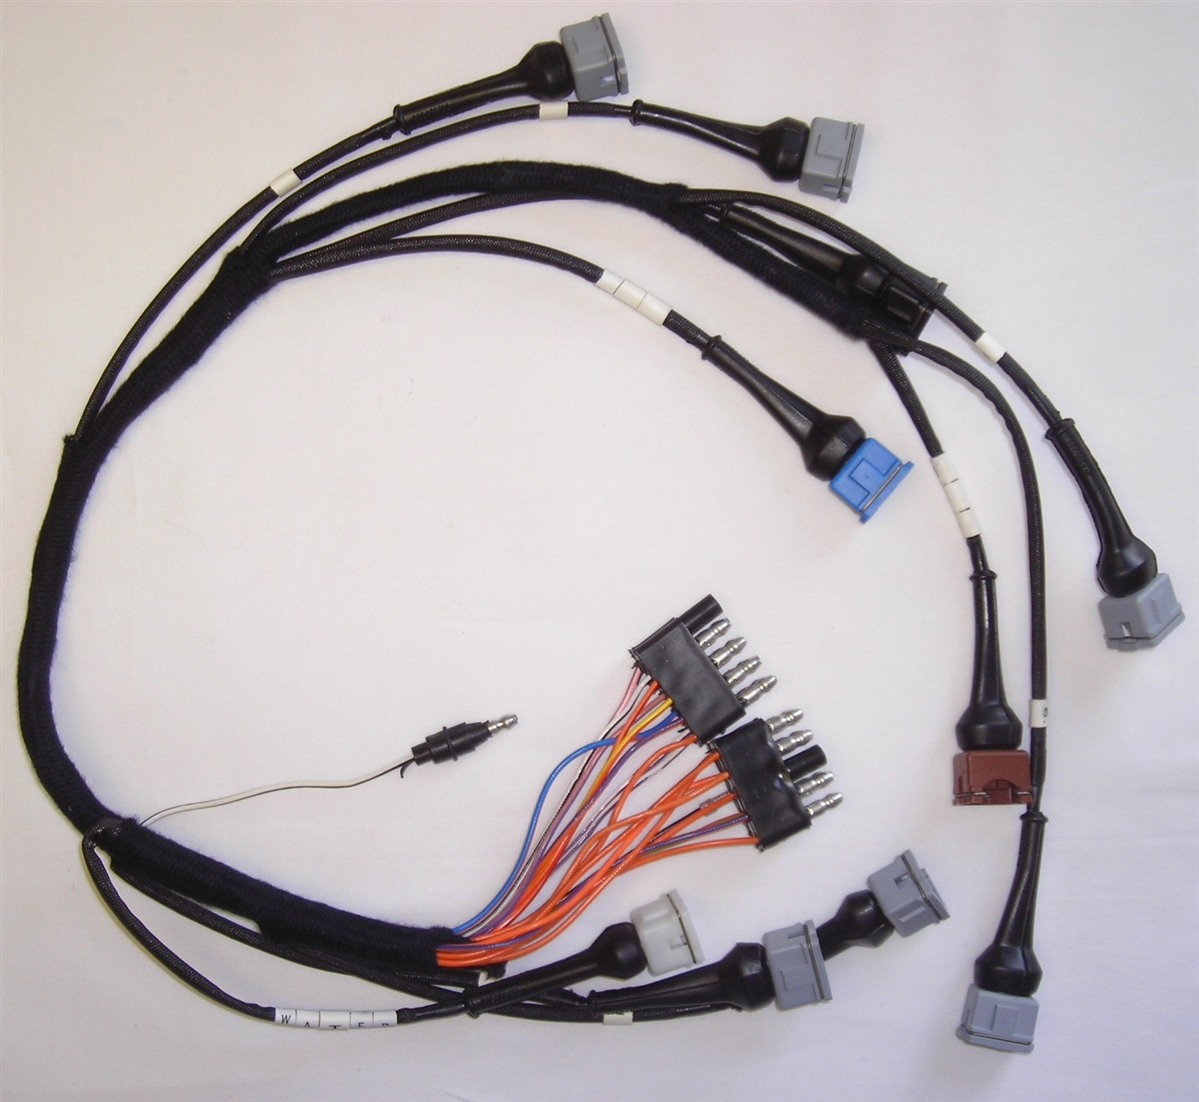 XJ6311 2?1403006000 jaguar series 3 xj6 fuel injection harness wiring harness for fuel injection at mifinder.co